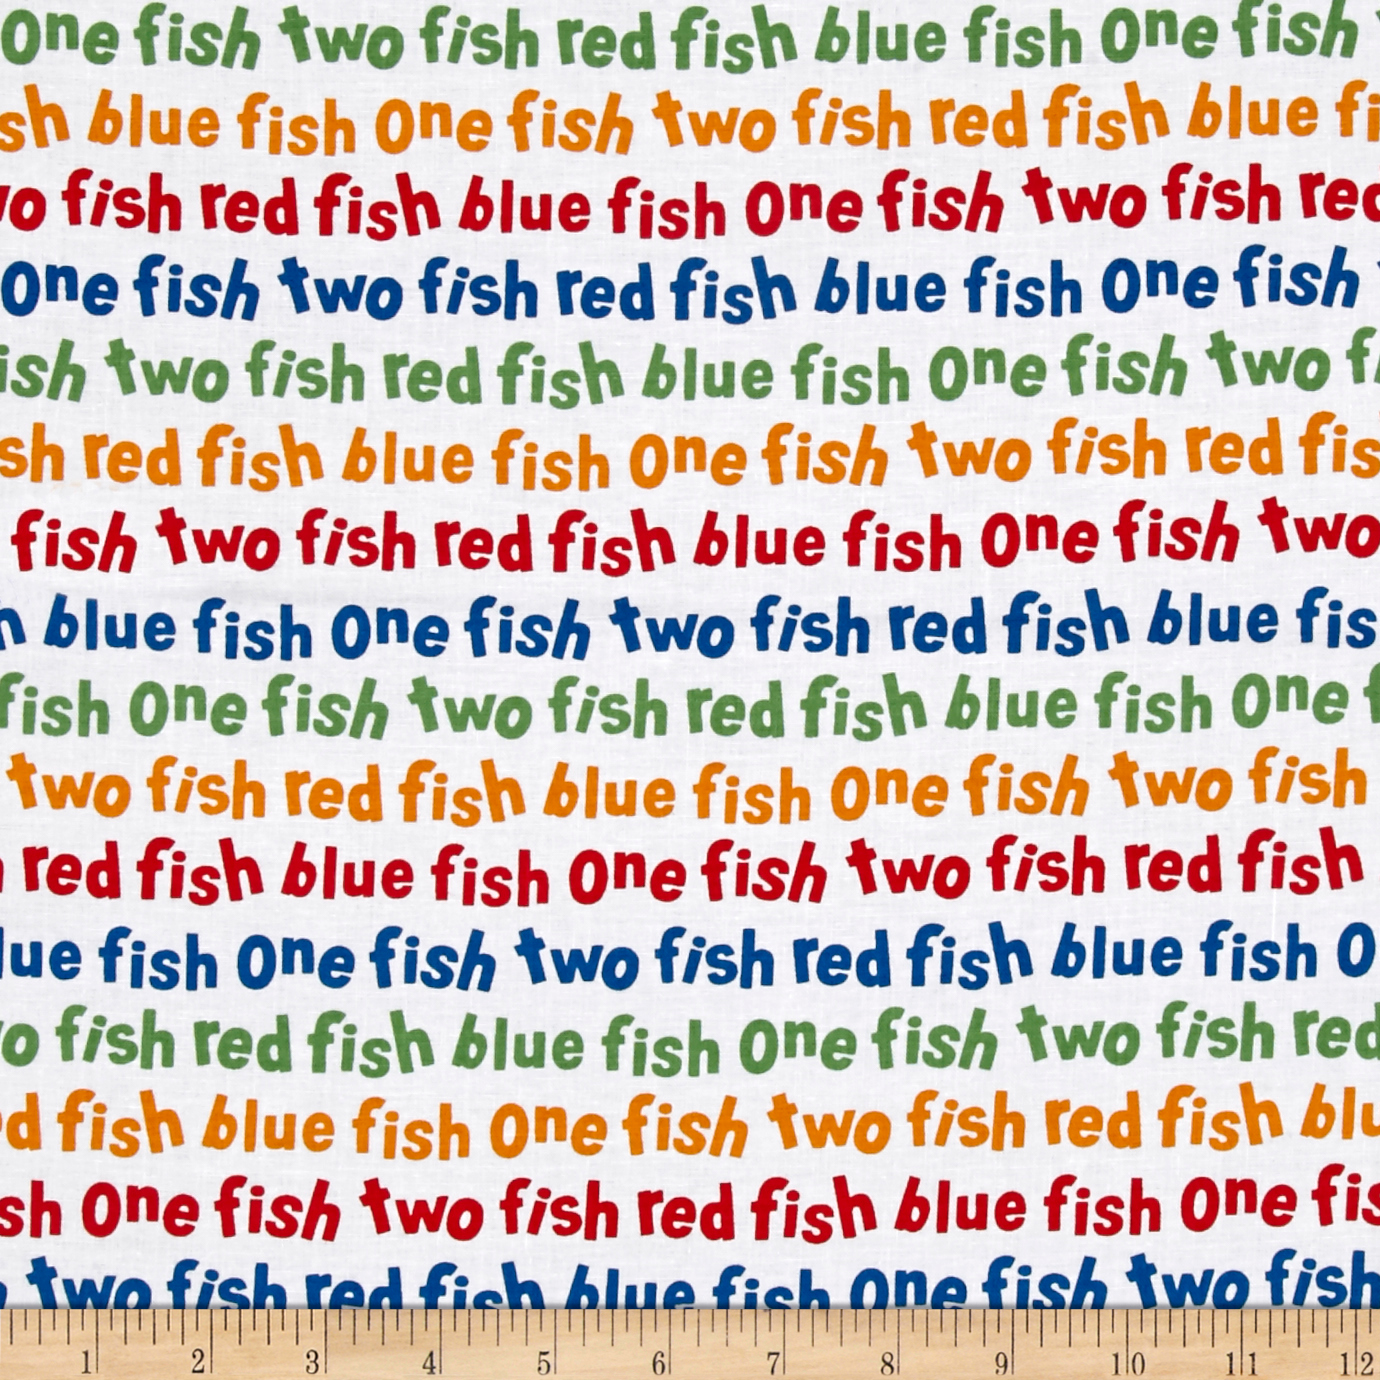 Dr. Seuss One Fish Two Fish Words Celebration Fabric